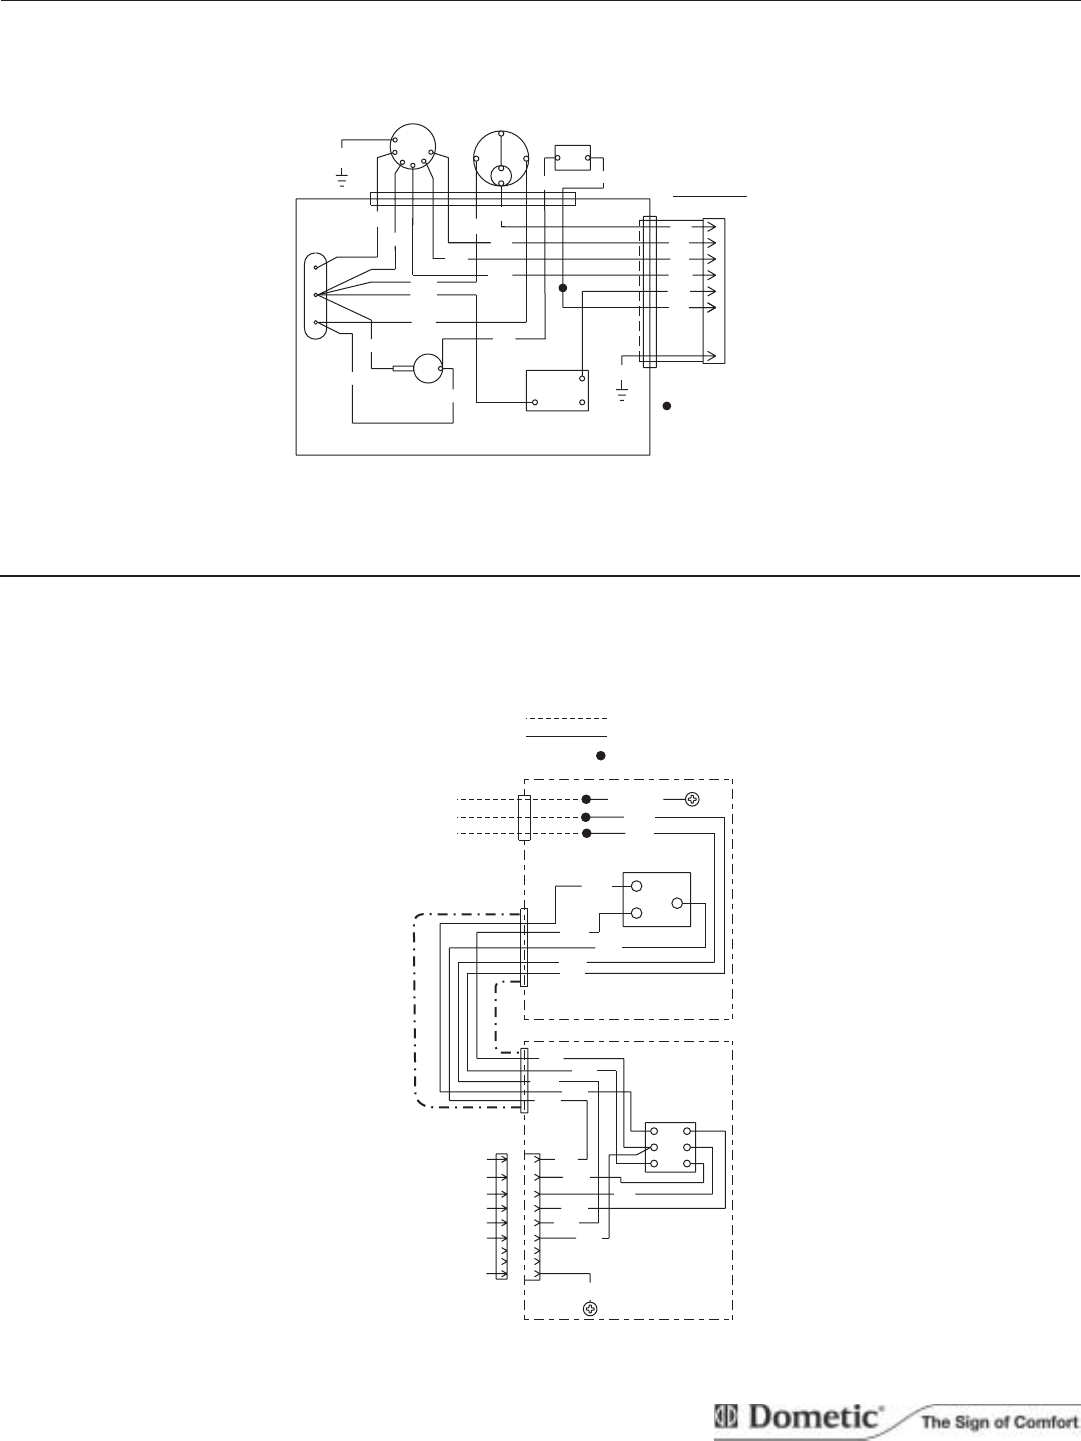 Duo therm rv air conditioner diagram forced air furnace wiring diagram at freeautoresponder co